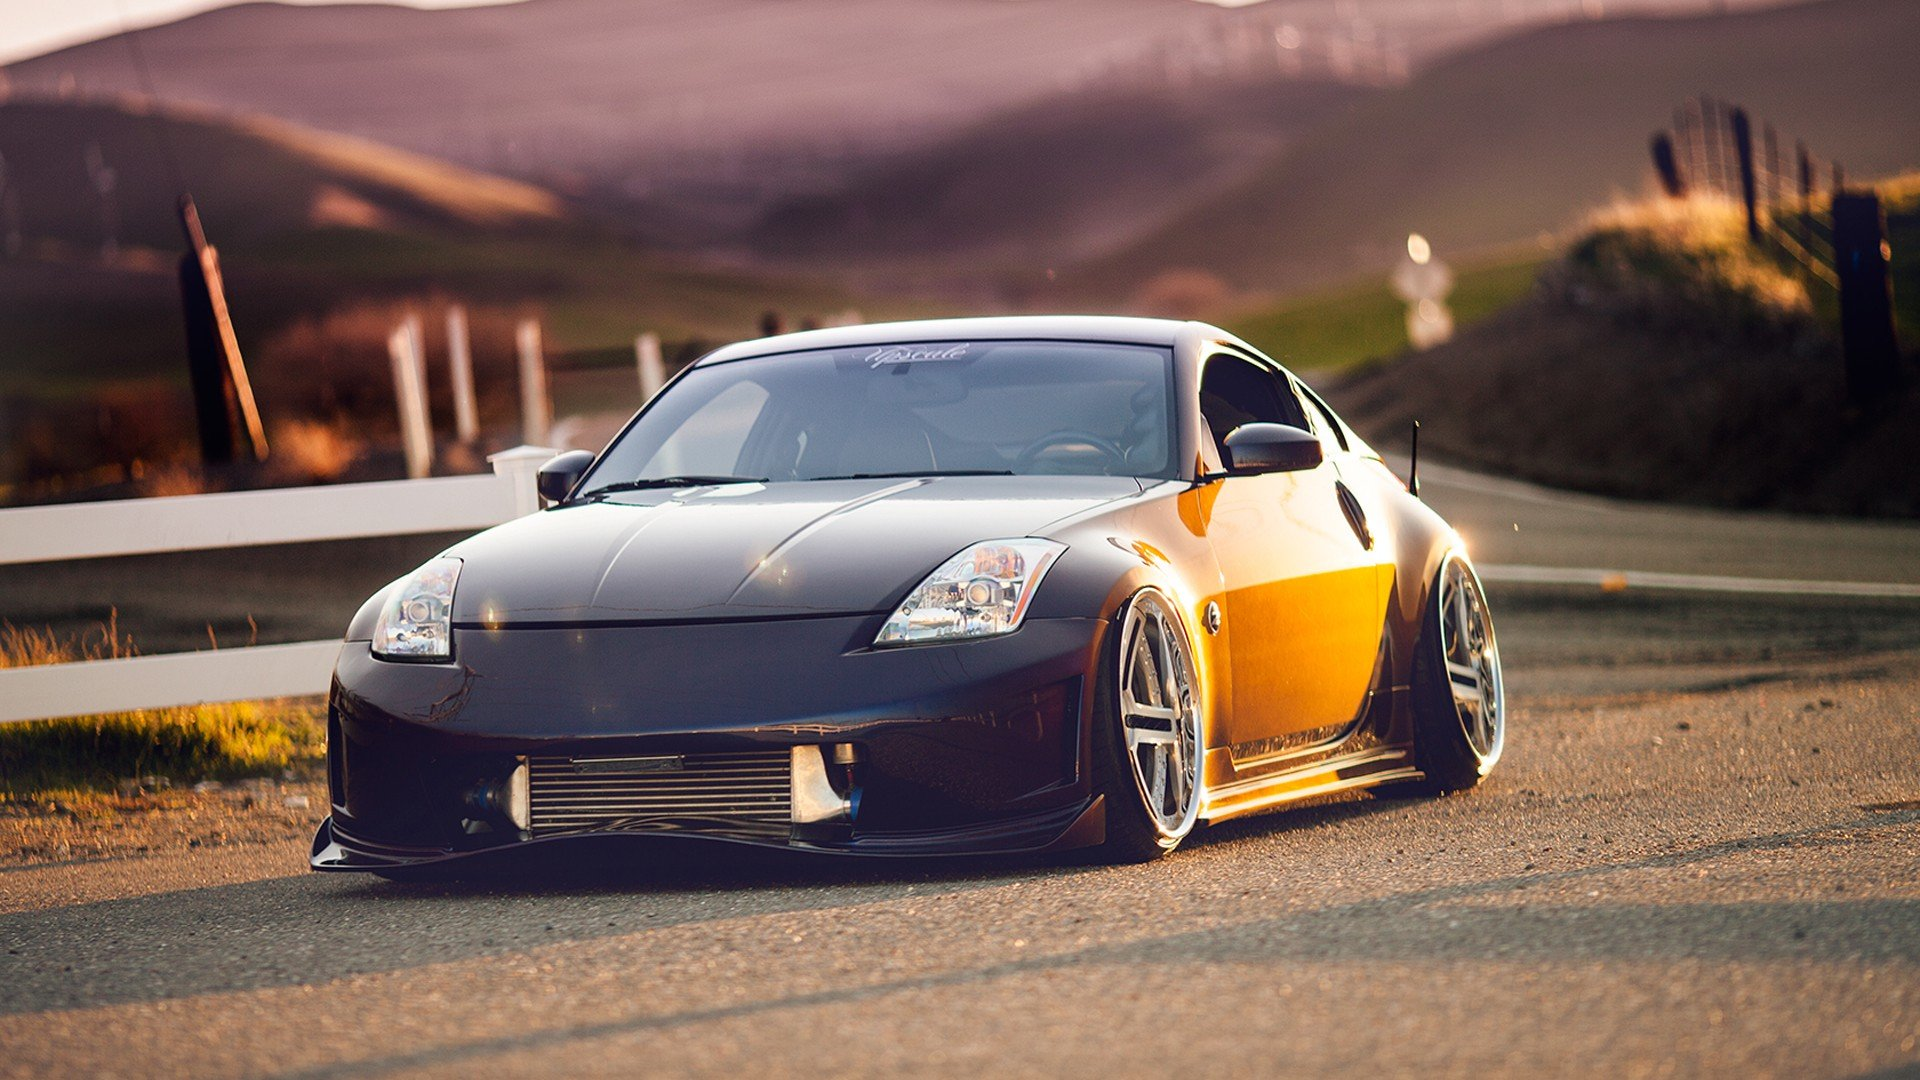 Nissan 350z Slammed tuning roads wallpaper 1920x1080 52177 1920x1080